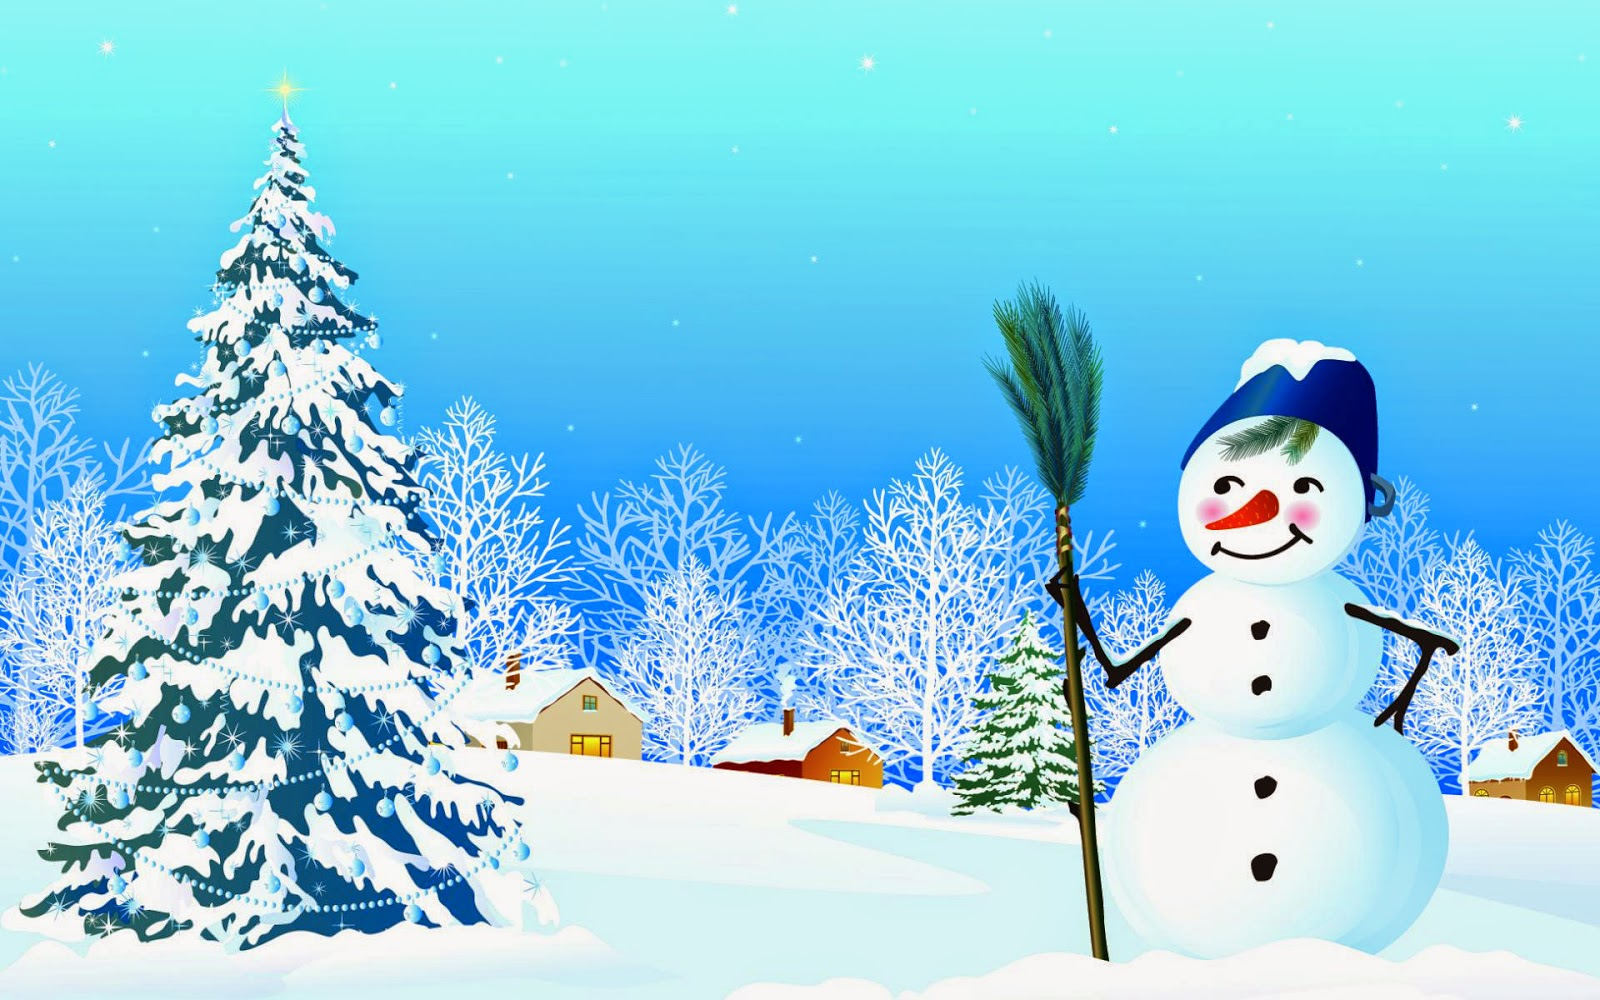 funny snowman cartoon drawing images for kids and